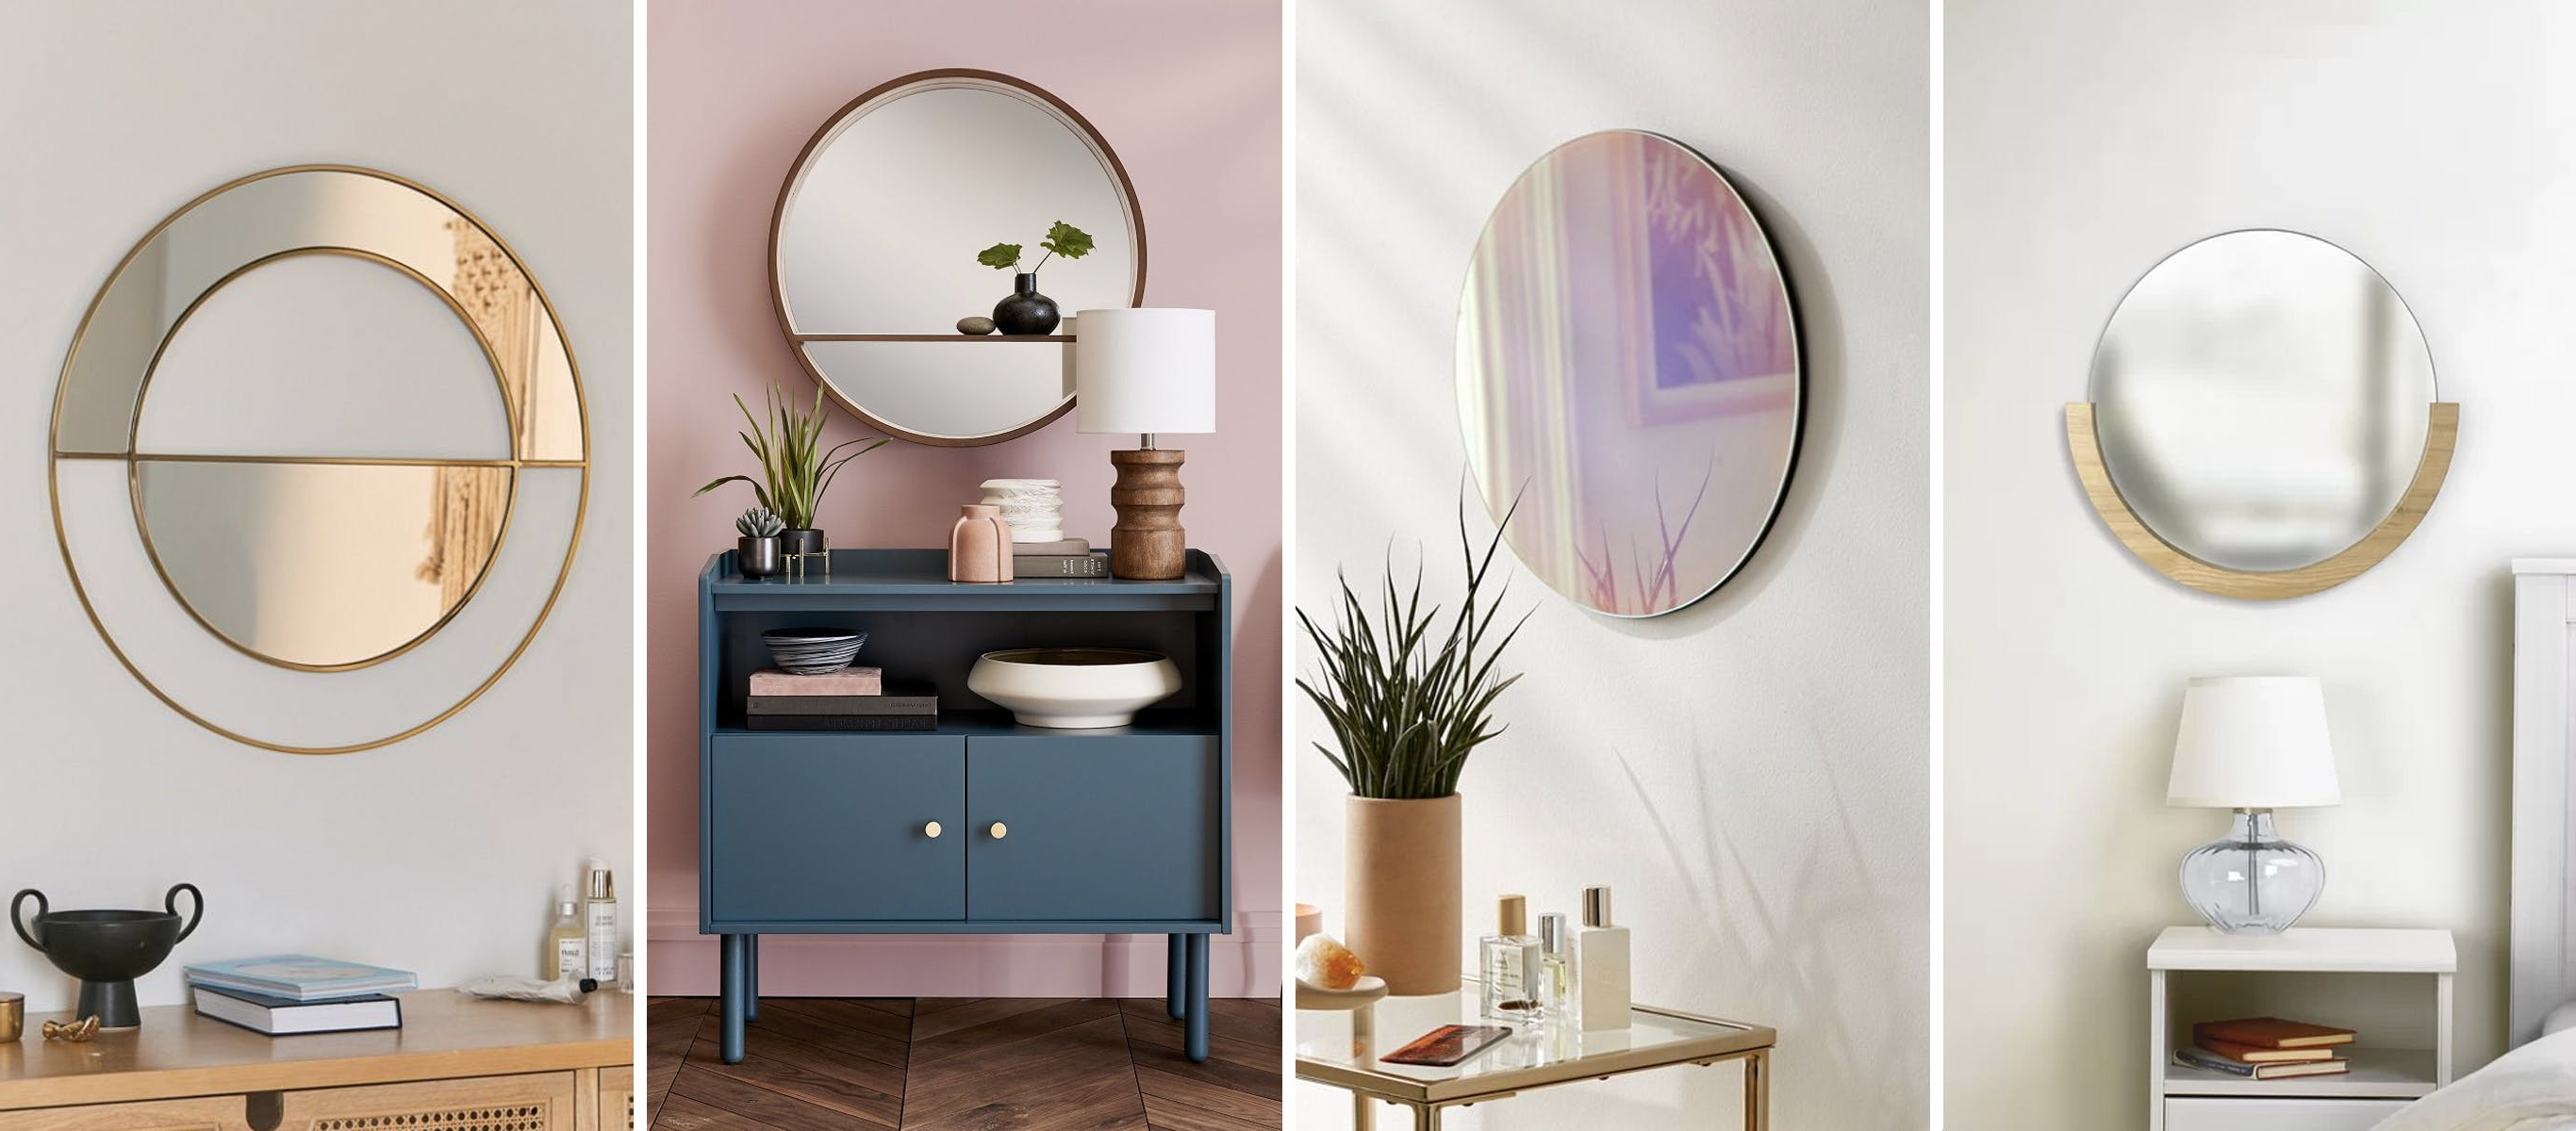 Most Recent Round Mirrors For Wall Decor In The Home (View 14 of 20)